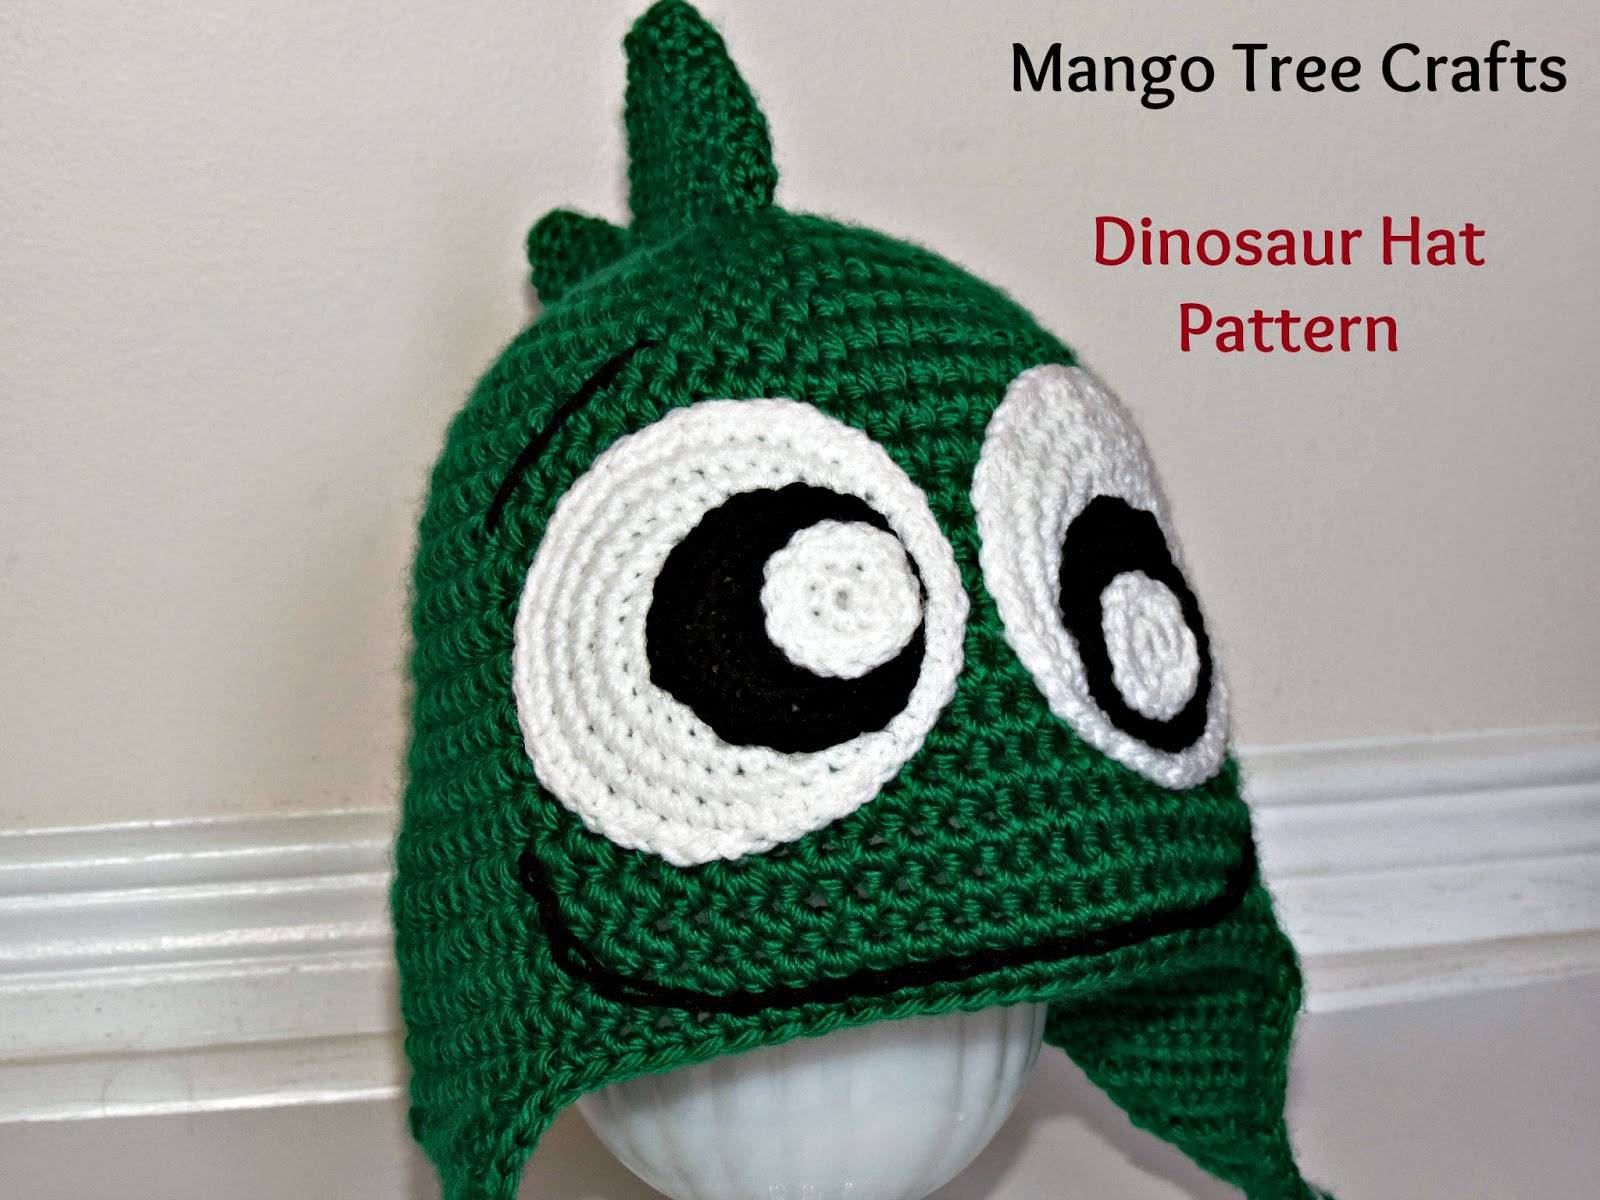 Dinosaur Knit Hat Pattern : Mango Tree Crafts: Crochet Dinosaur Hat Pattern